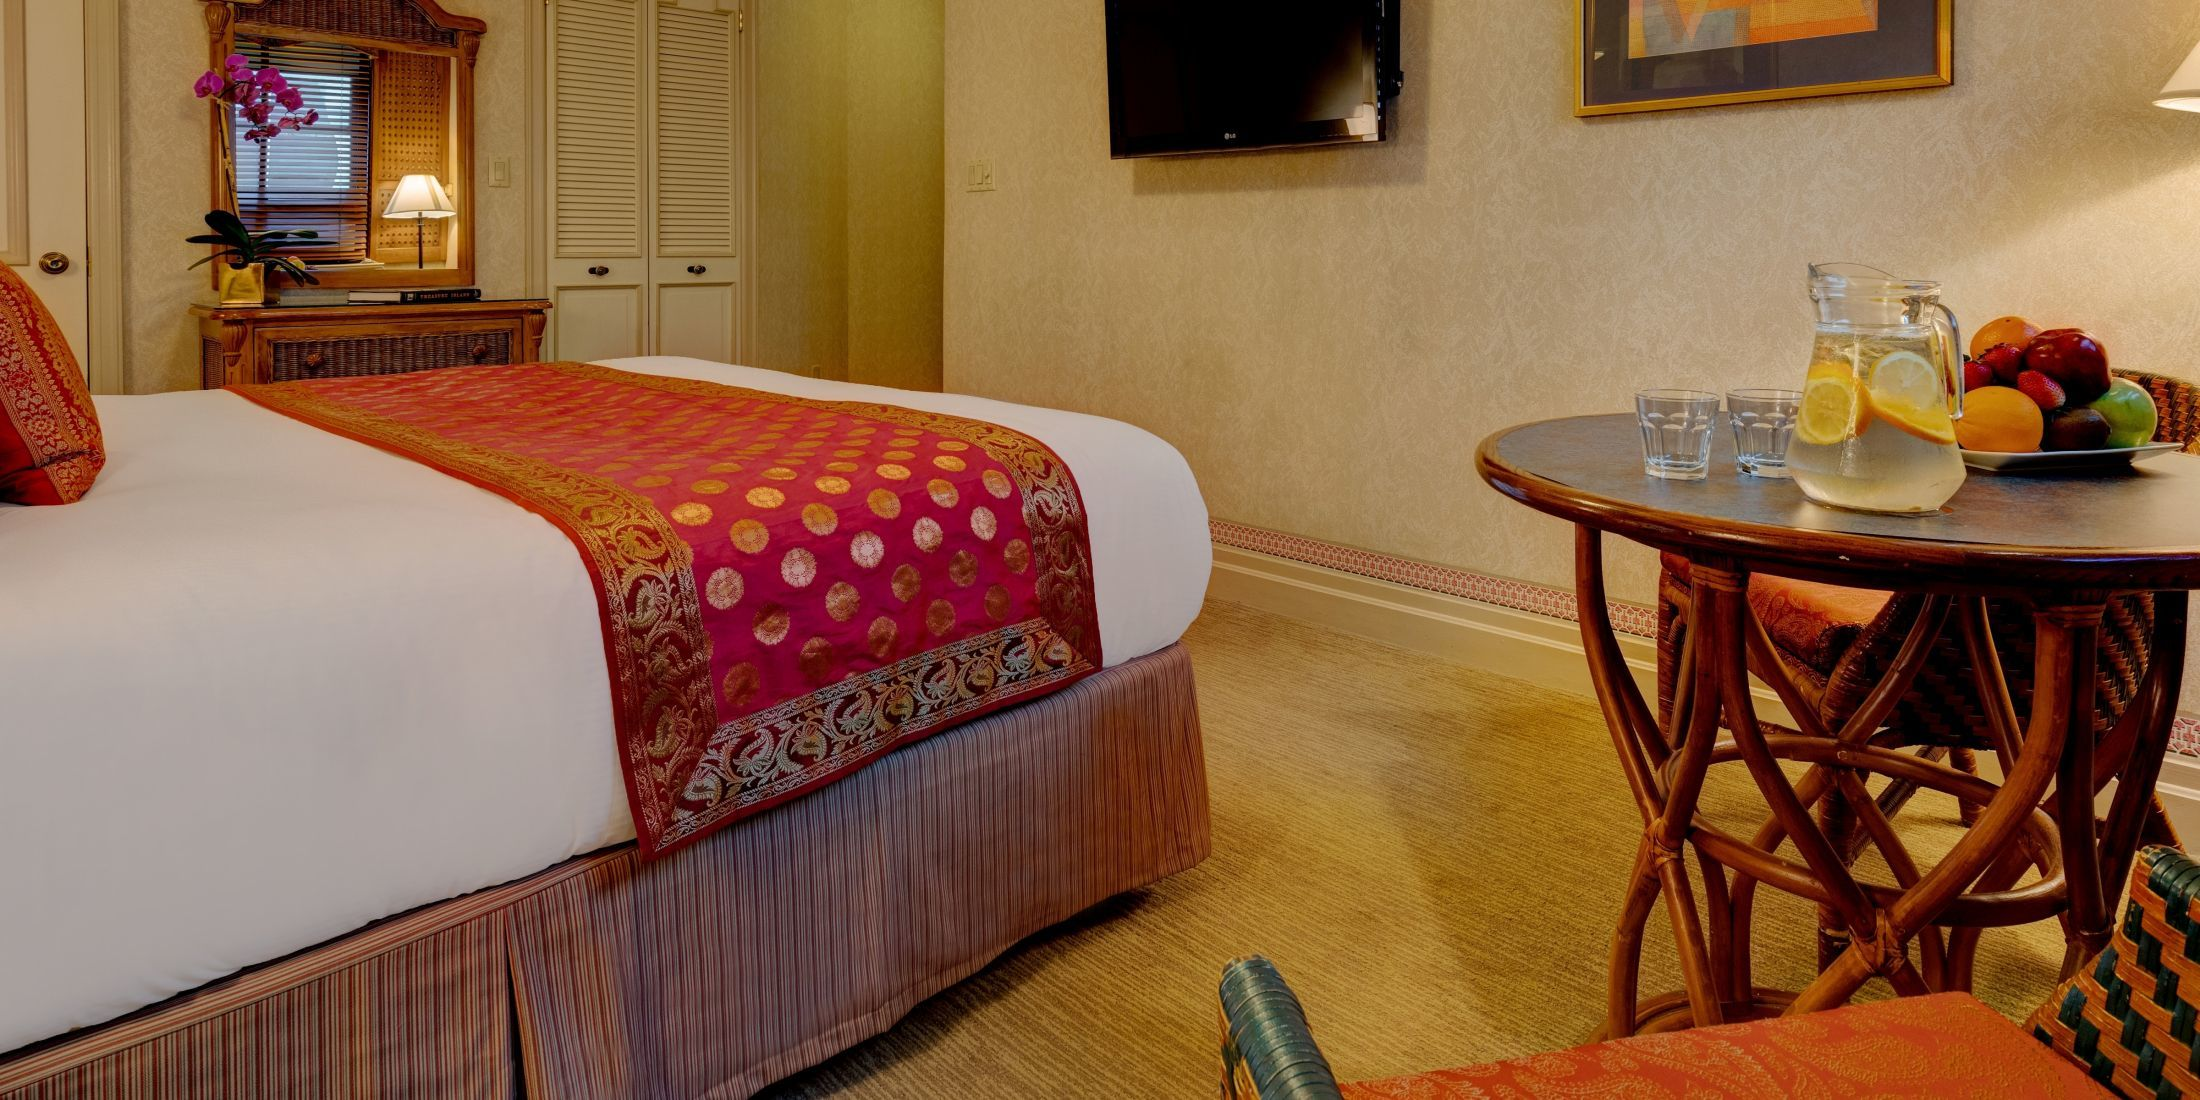 Premium Rooms with 1 King Sized bed are approximately 275 square feet with bistro table and 2 chairs.